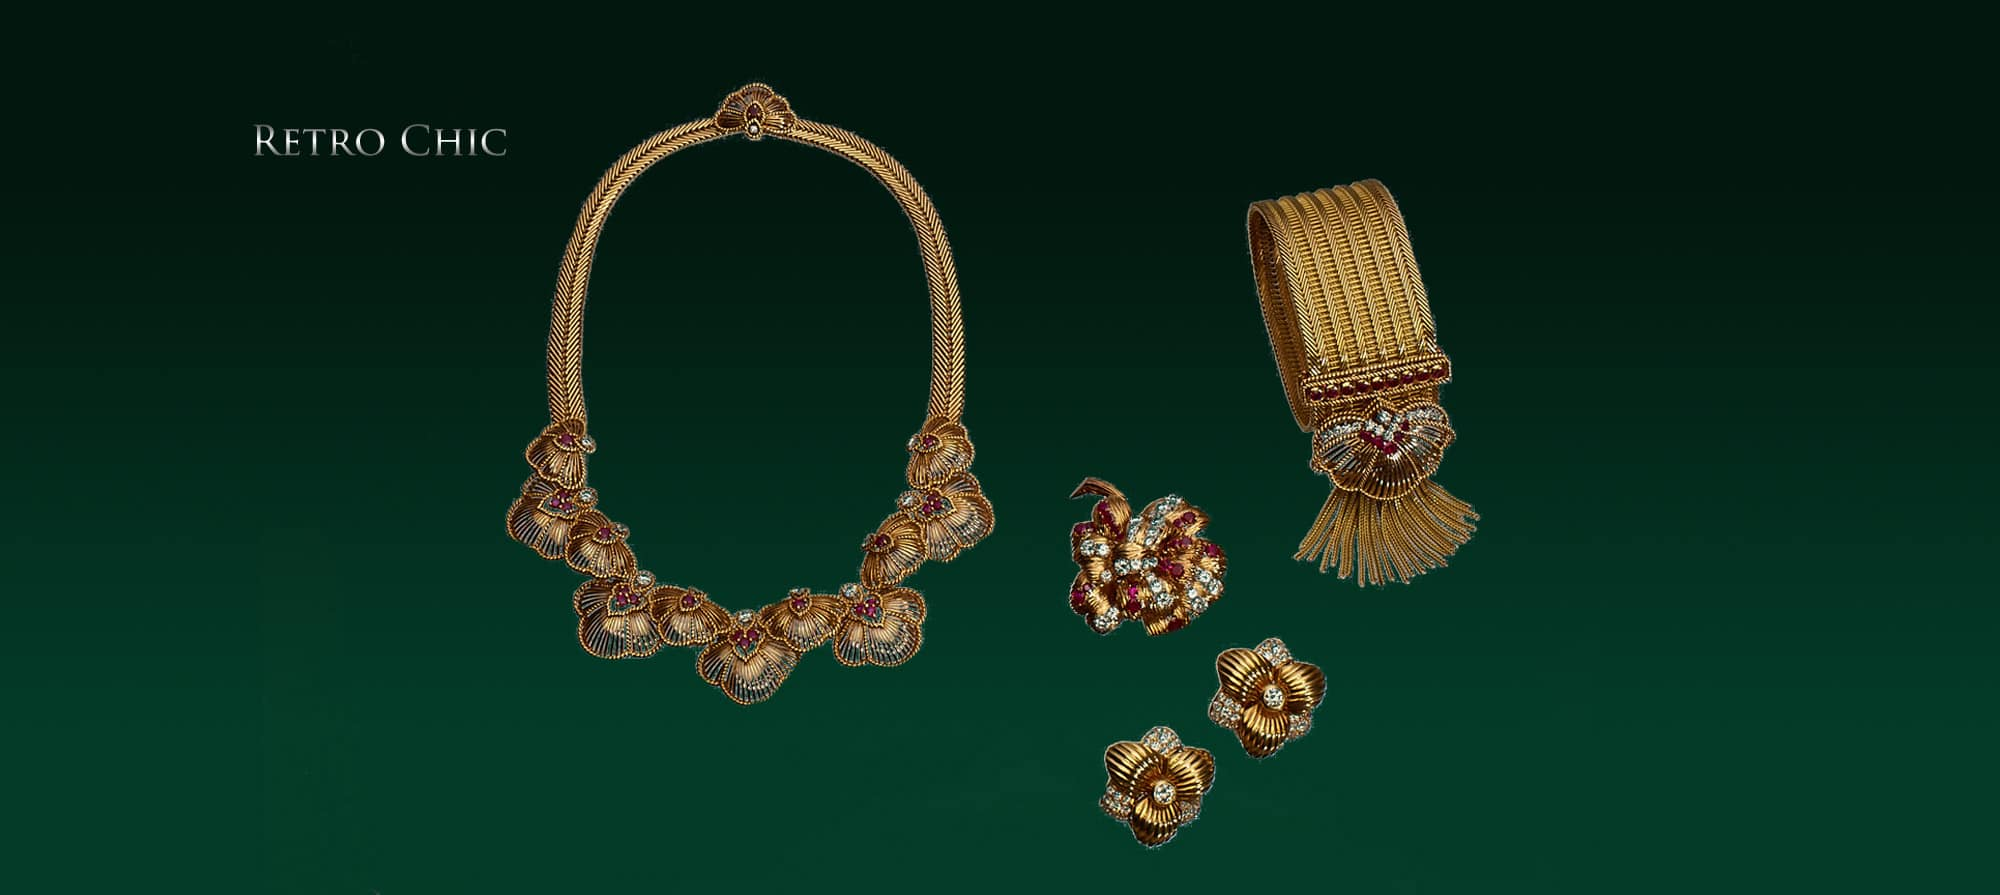 Ruby & Diamond Flower Necklace in Gold by Champagnat, Ruby and Diamond Brooch by Van Cleef & Arpels. Circa 1960, Ruby and Diamond Bracelet with Detachable Clip by Champagnat, Gold and Diamond Earrings by Boucheron. Circa 1950